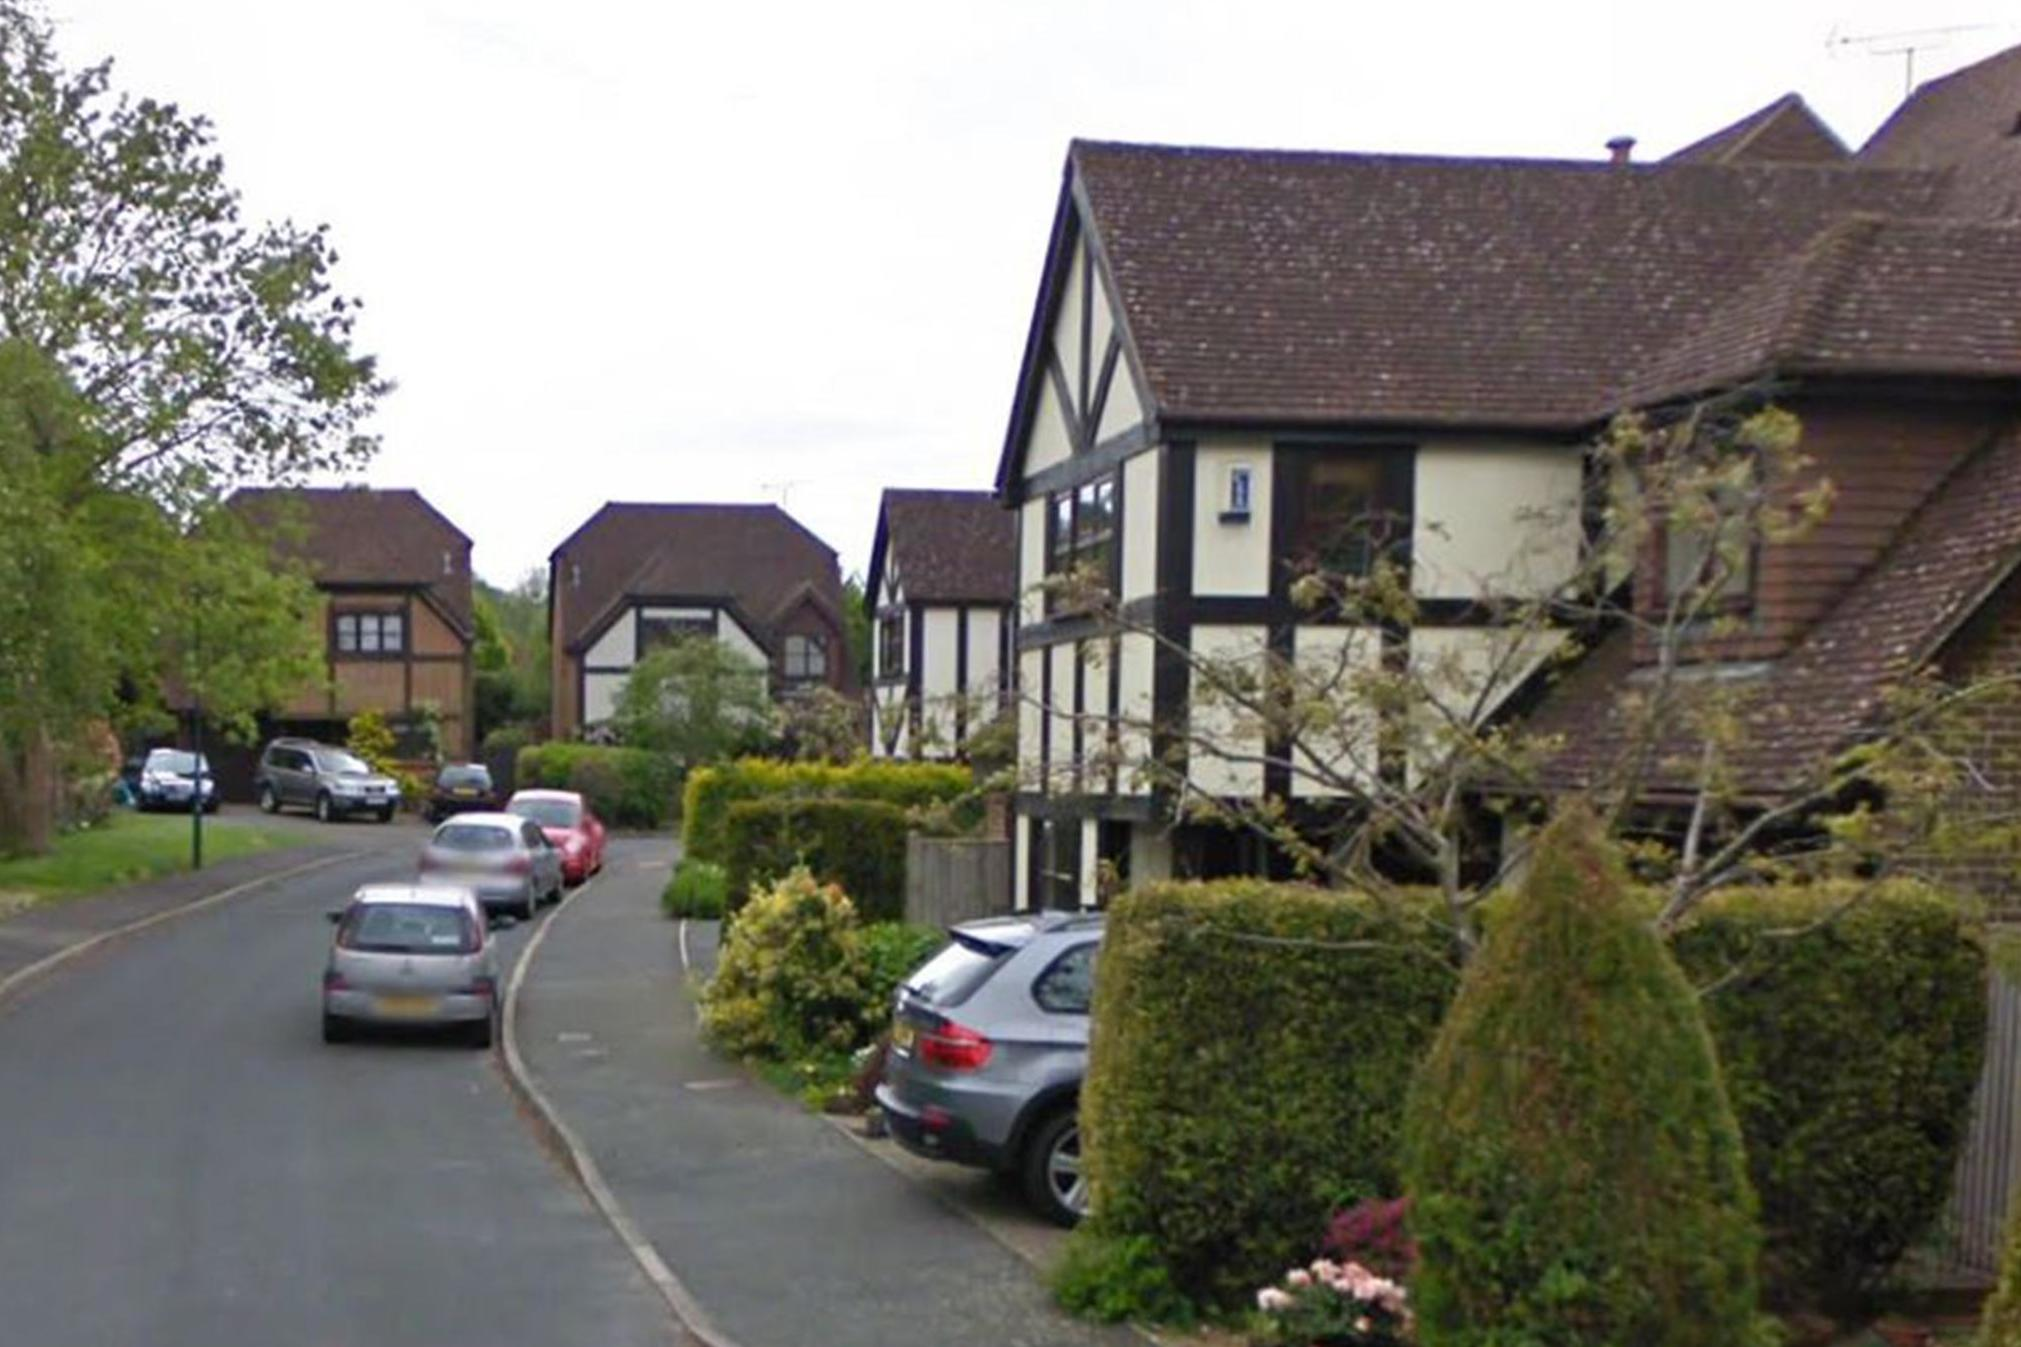 Sussex murder probe: Man arrested after woman found dead at house